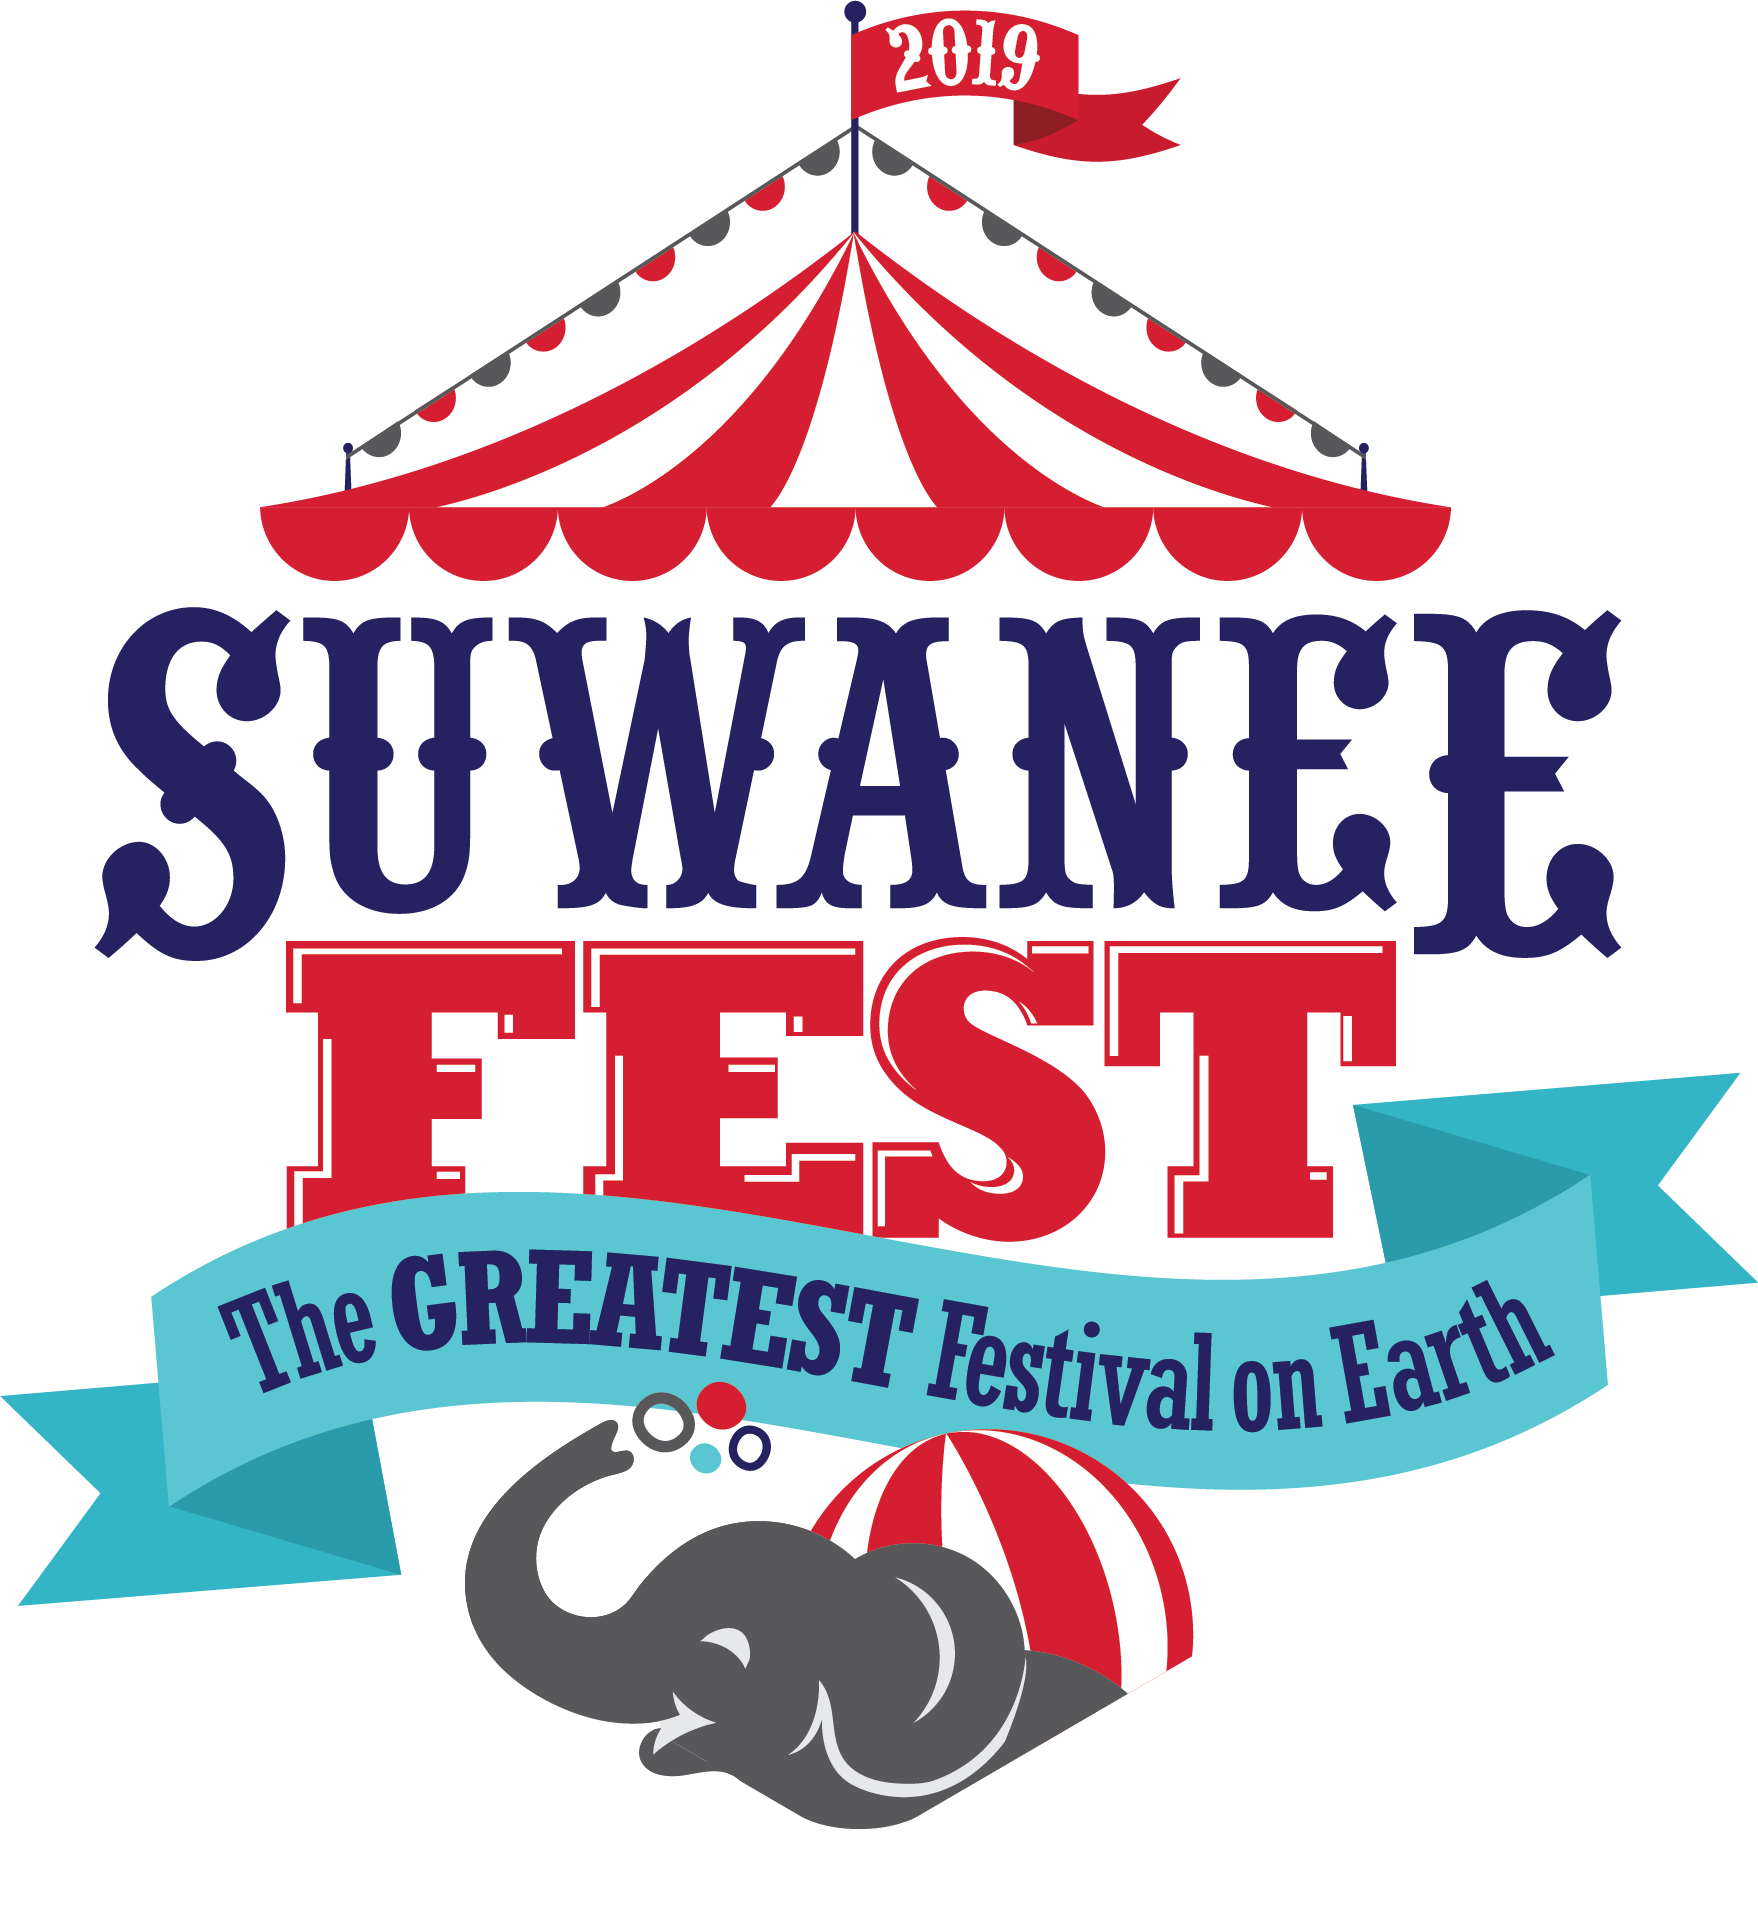 Come One, Come All, to the World-Famous Suwanee Fest!